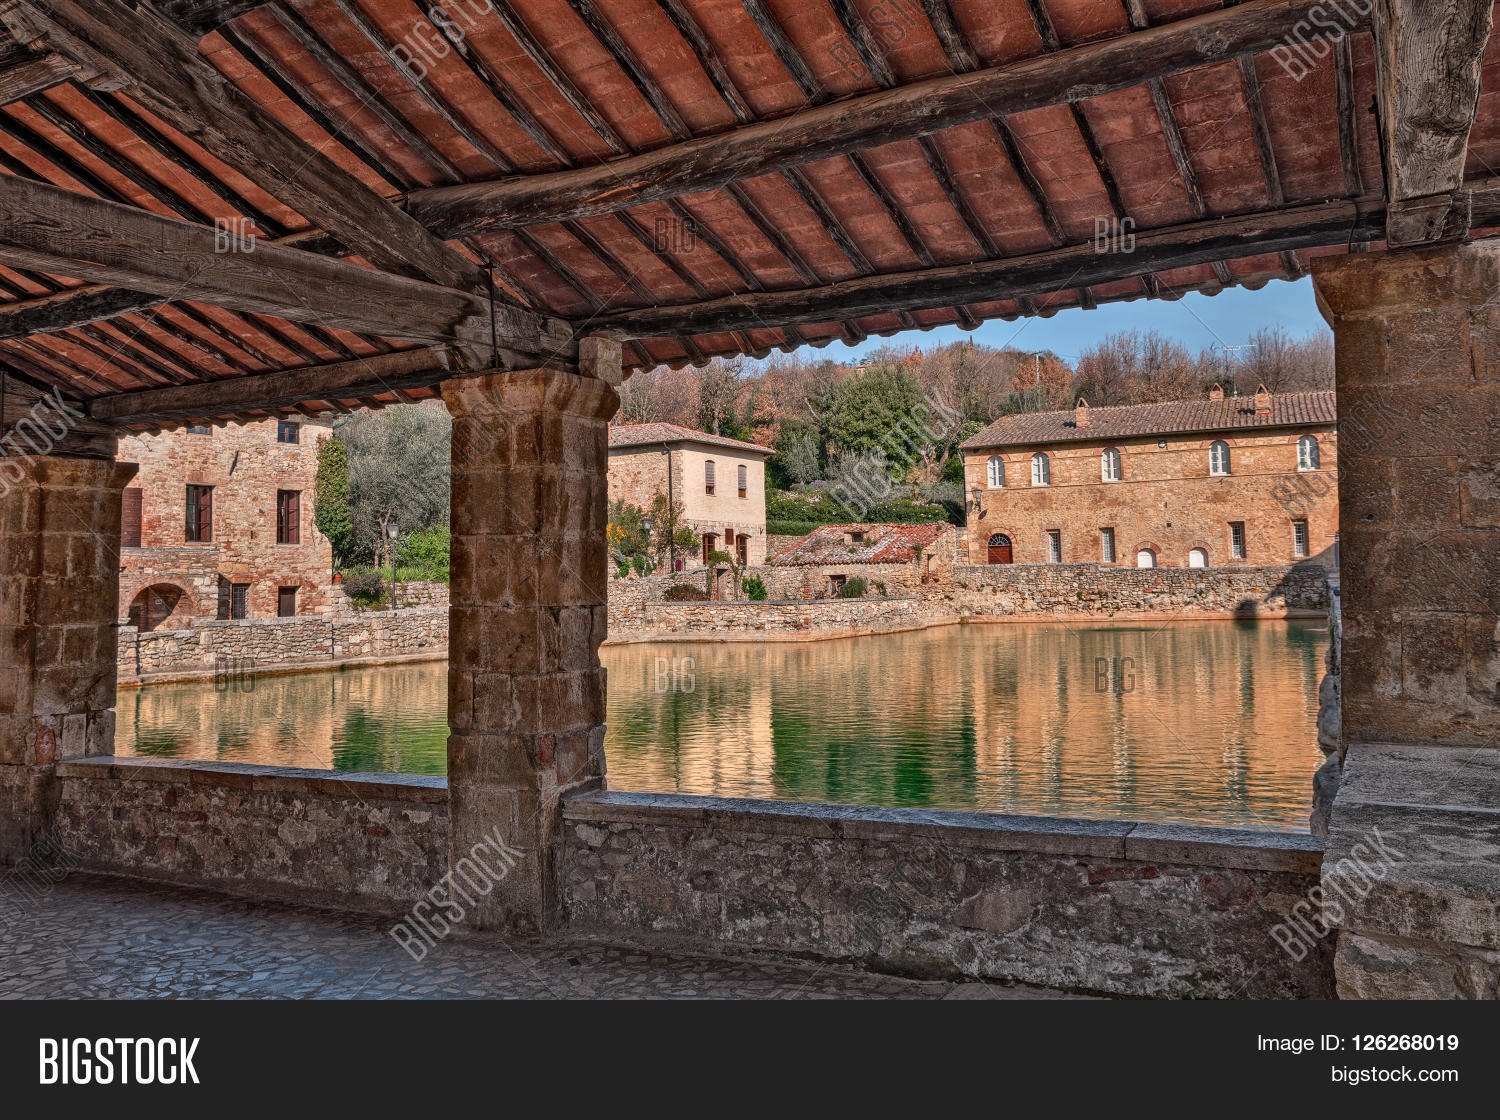 Bagno Vignoni Free Thermal Baths Old Thermal Baths Image Photo Free Trial Bigstock